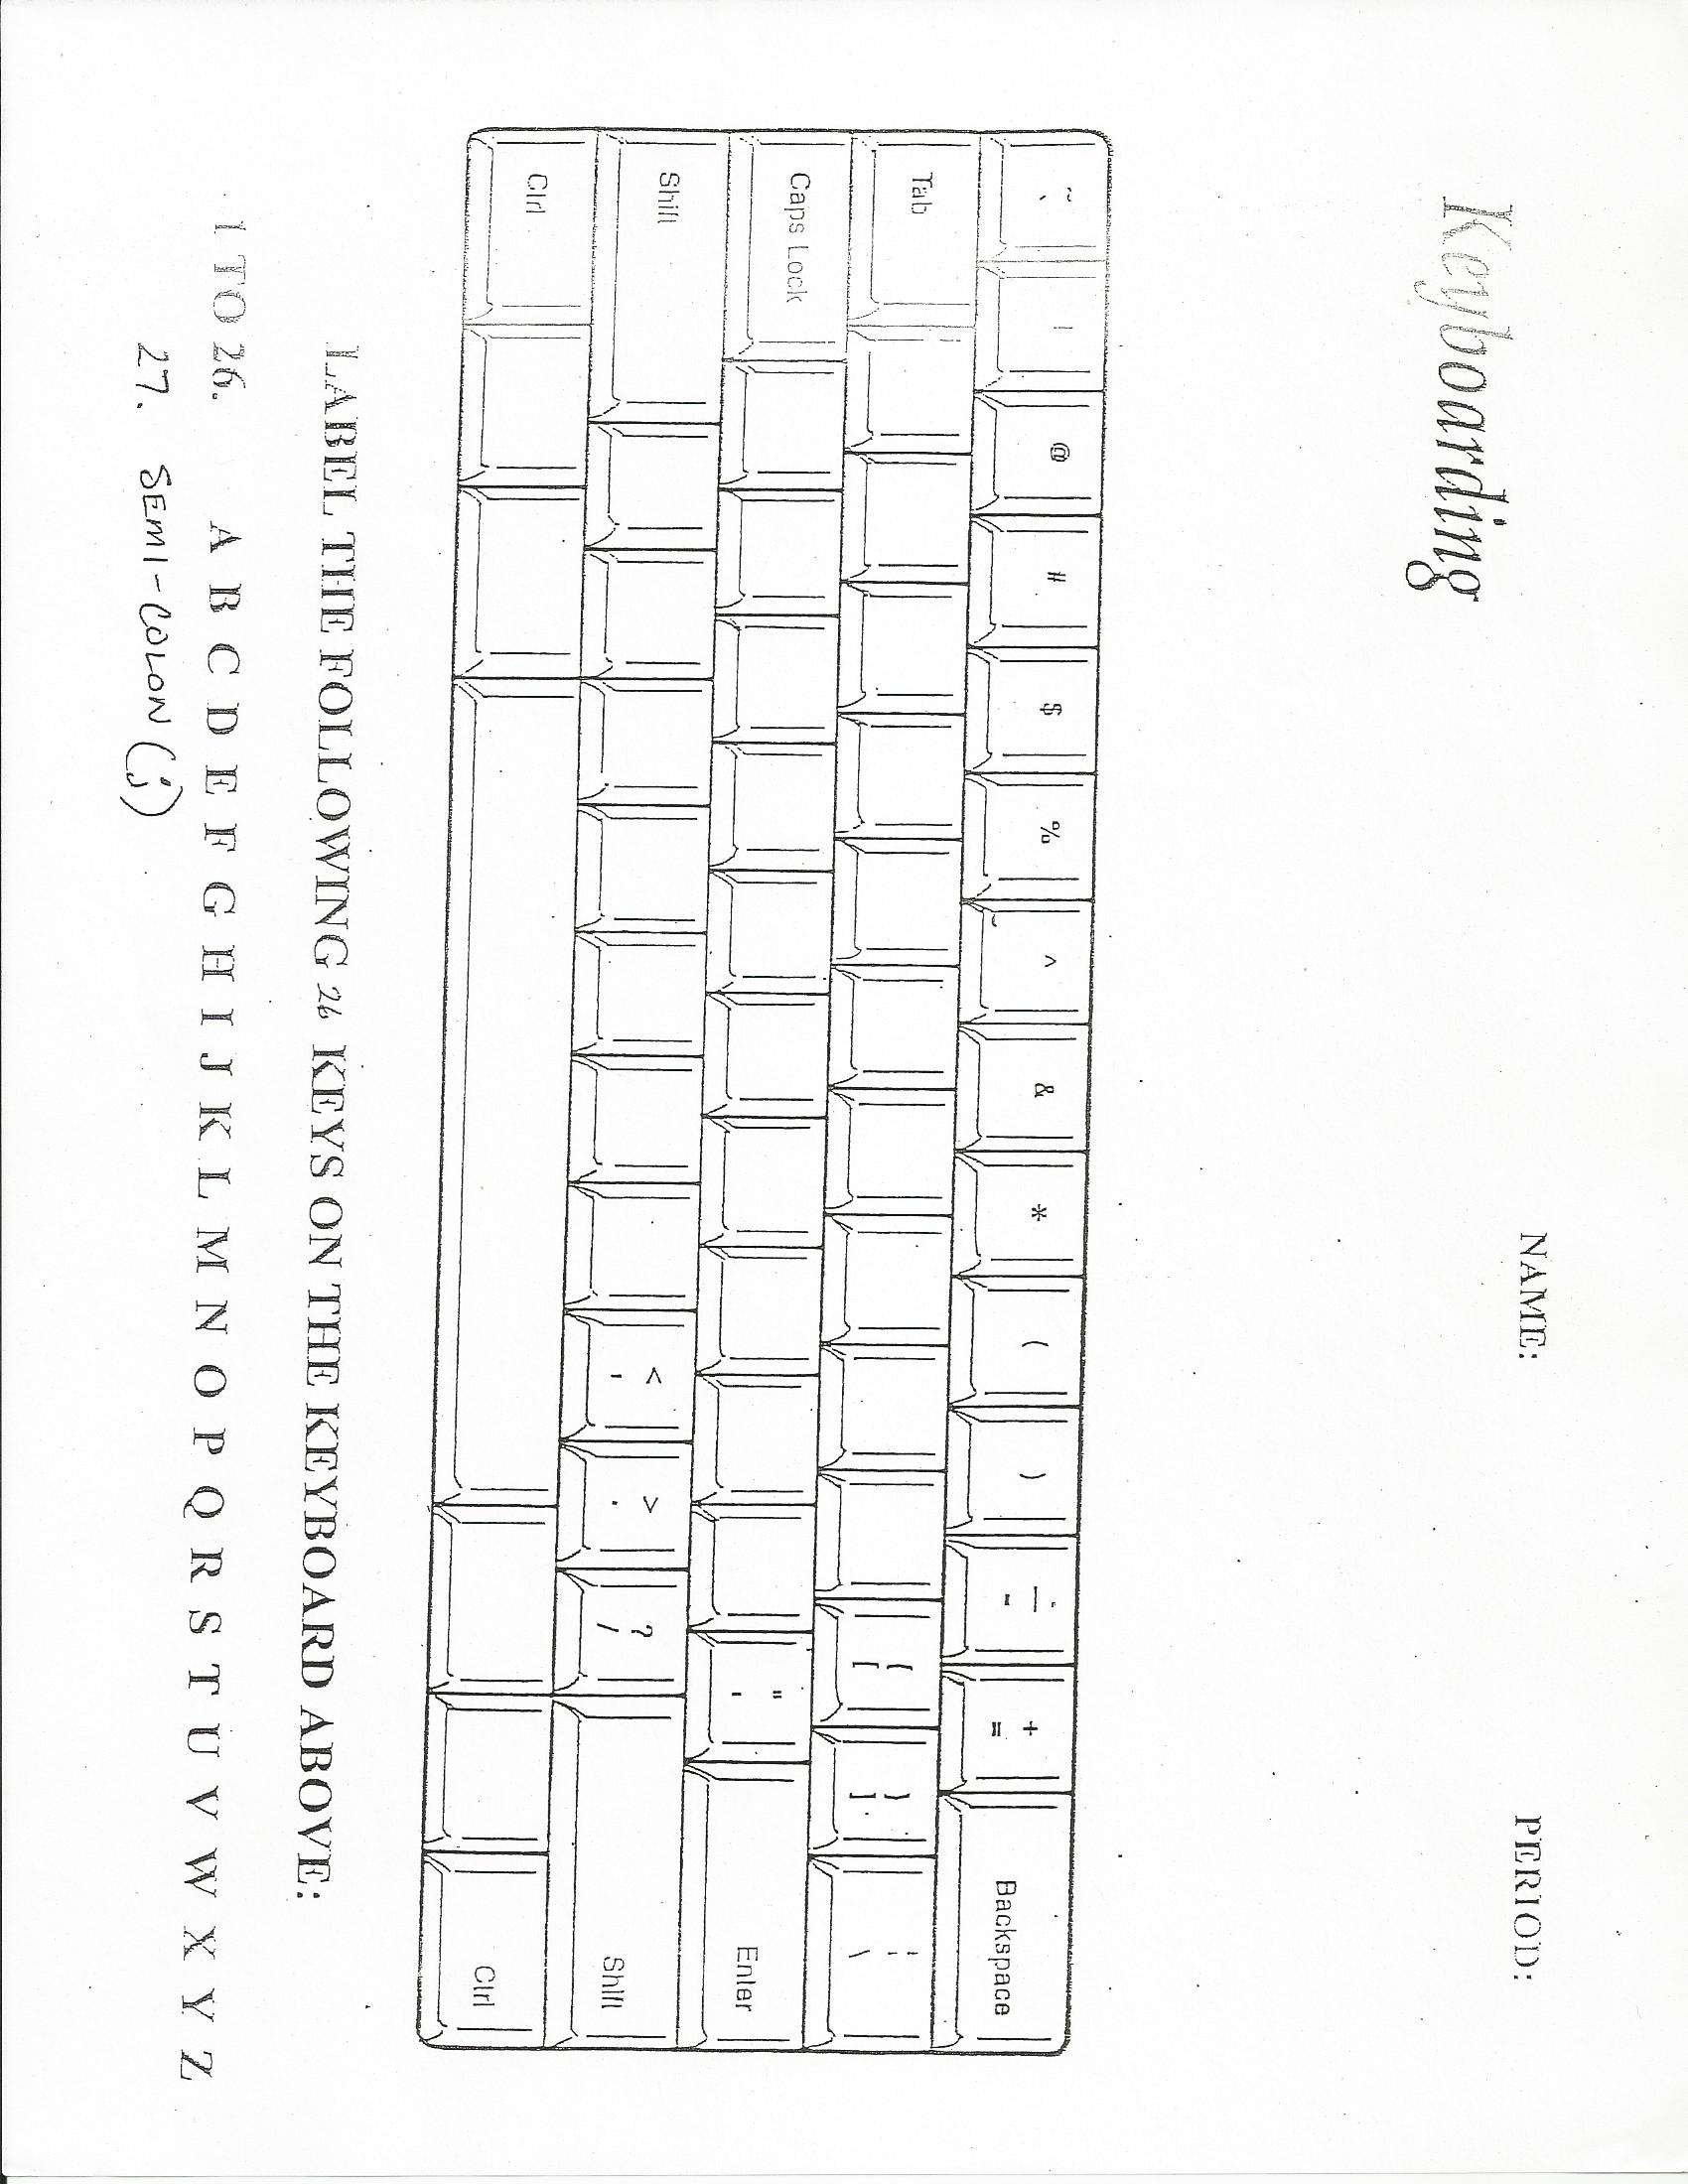 Free Worksheet Blank Computer Keyboard Worksheet computer literacy assignments mr yorks web page download file